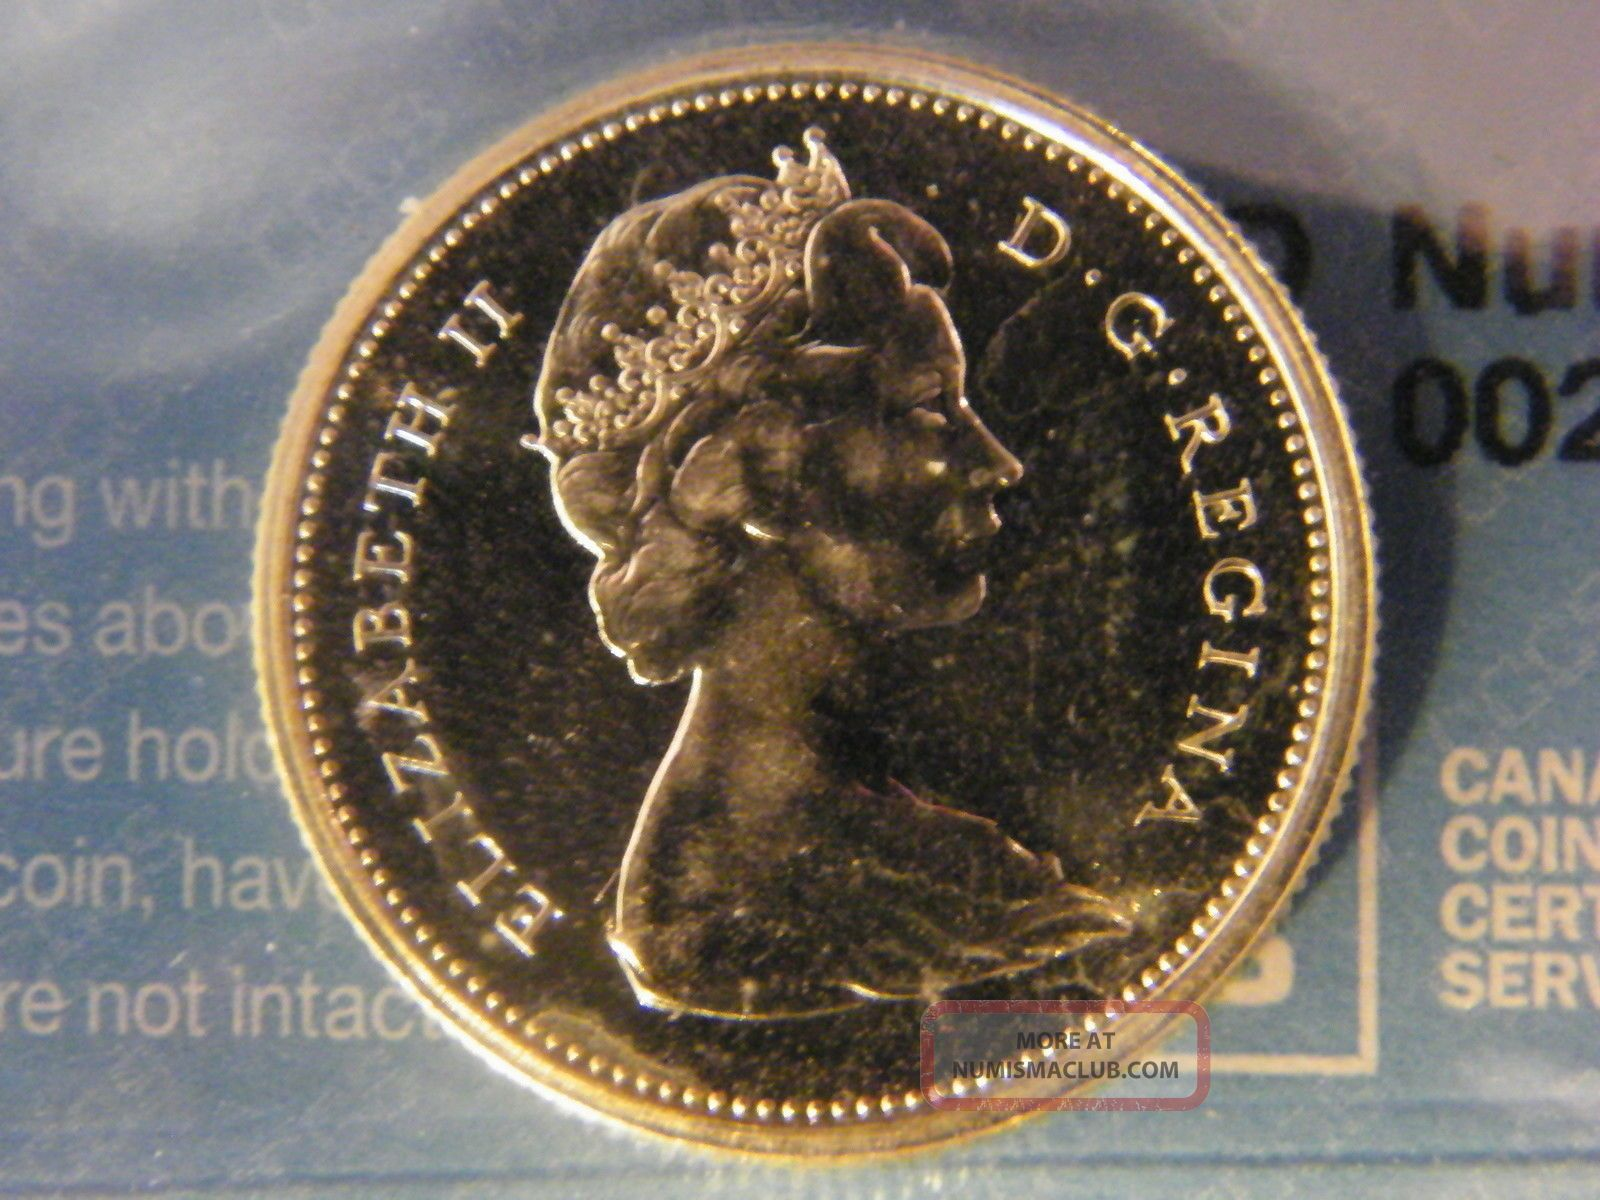 Canadian 5 cent coin 1967 value / Bitcoin uses more power than